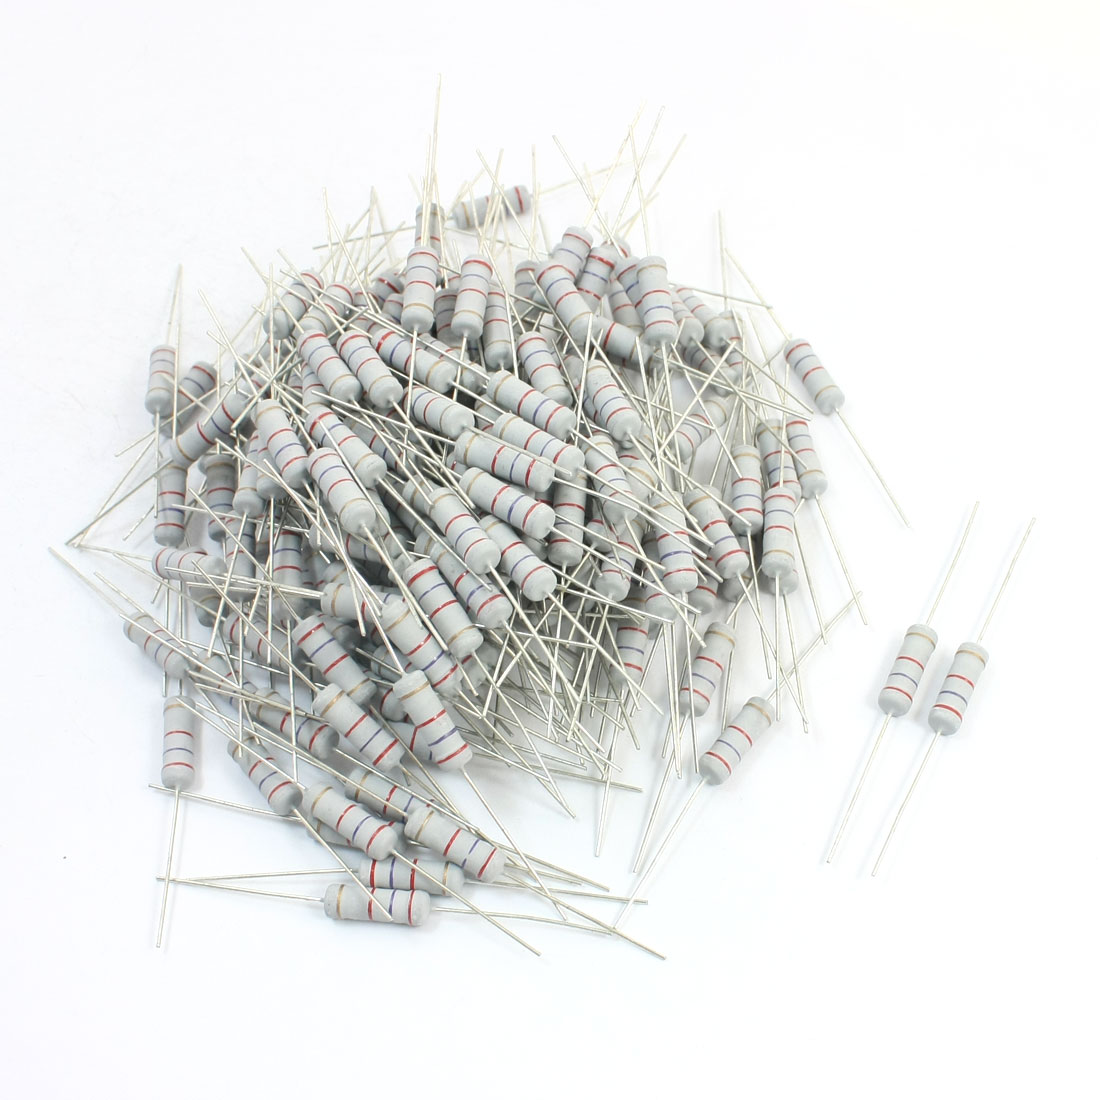 2.7K Ohm 5W 5% Tolerance Through Hole Metal Oxide Film Resistor 200Pcs